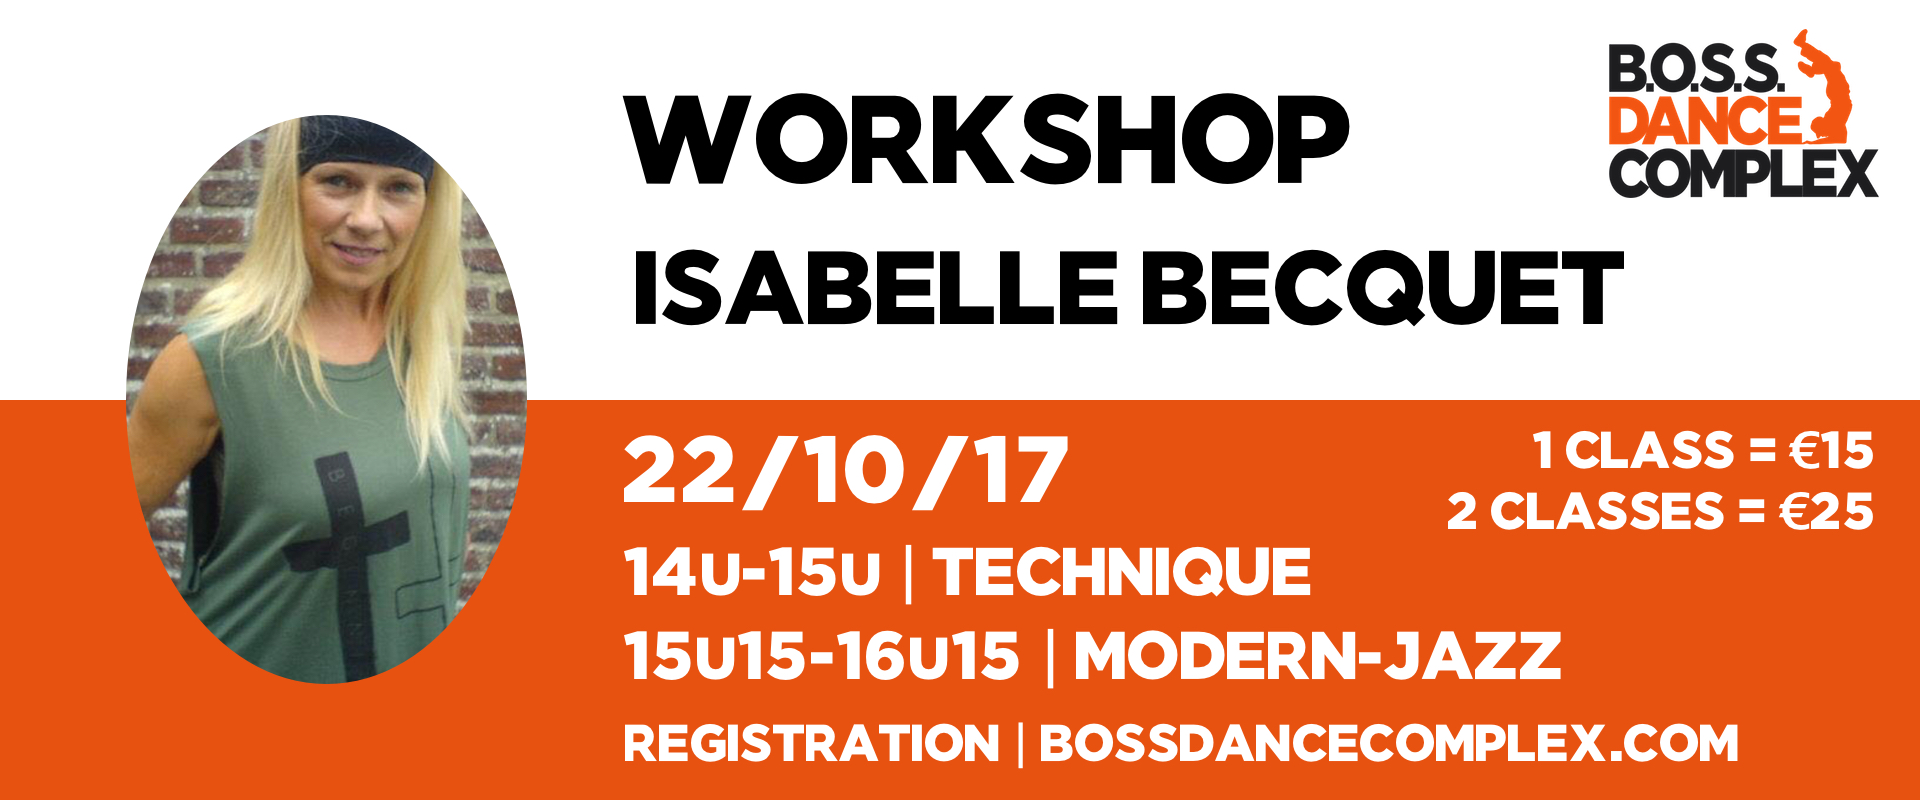 Workshop Isabelle Becquet